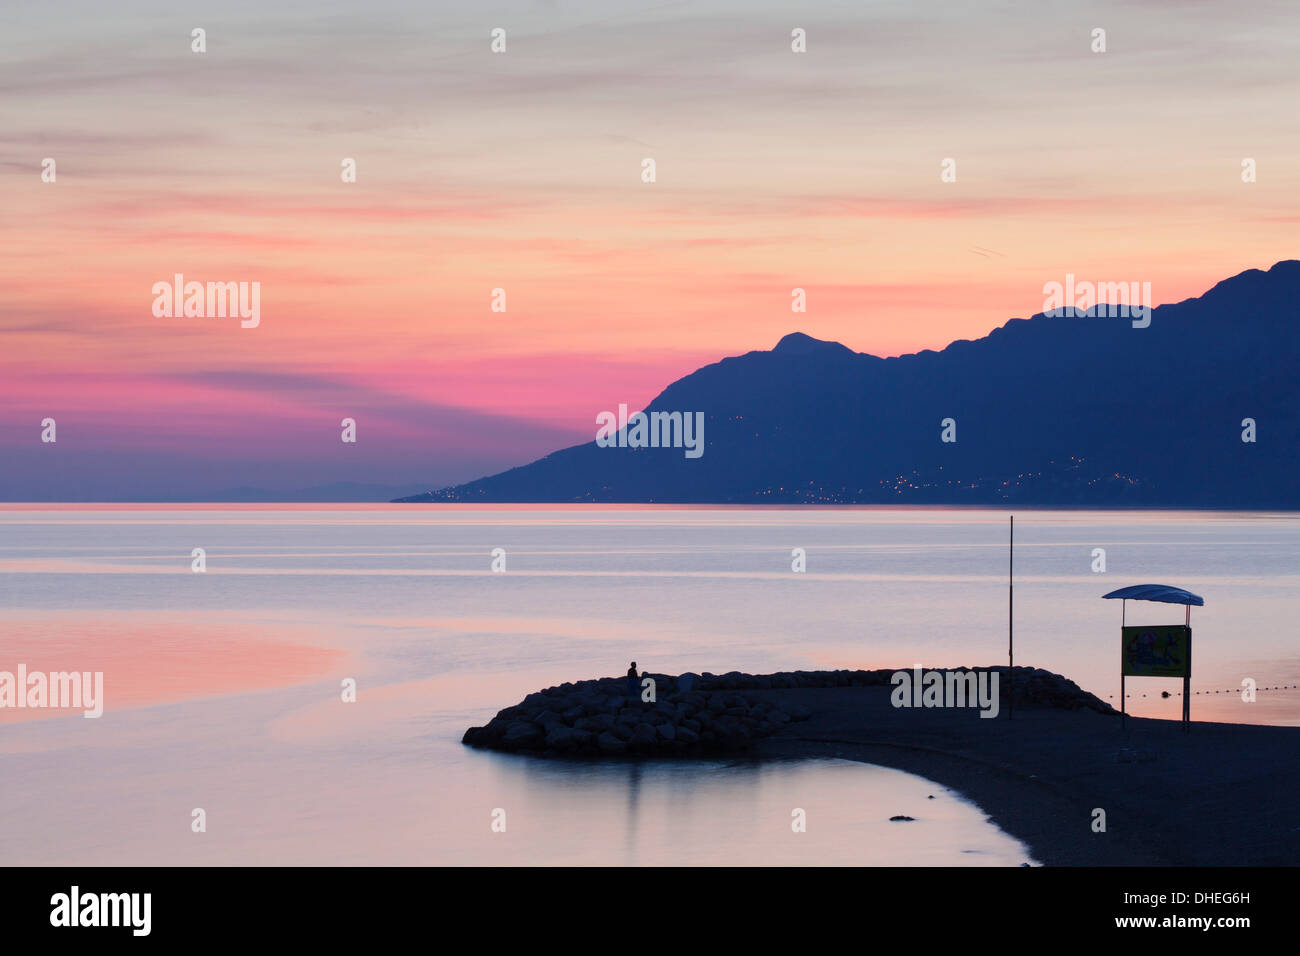 Sunset at the beach of Baska Voda, Makarska Riviera, Dalmatia, Croatia, Europe - Stock Image